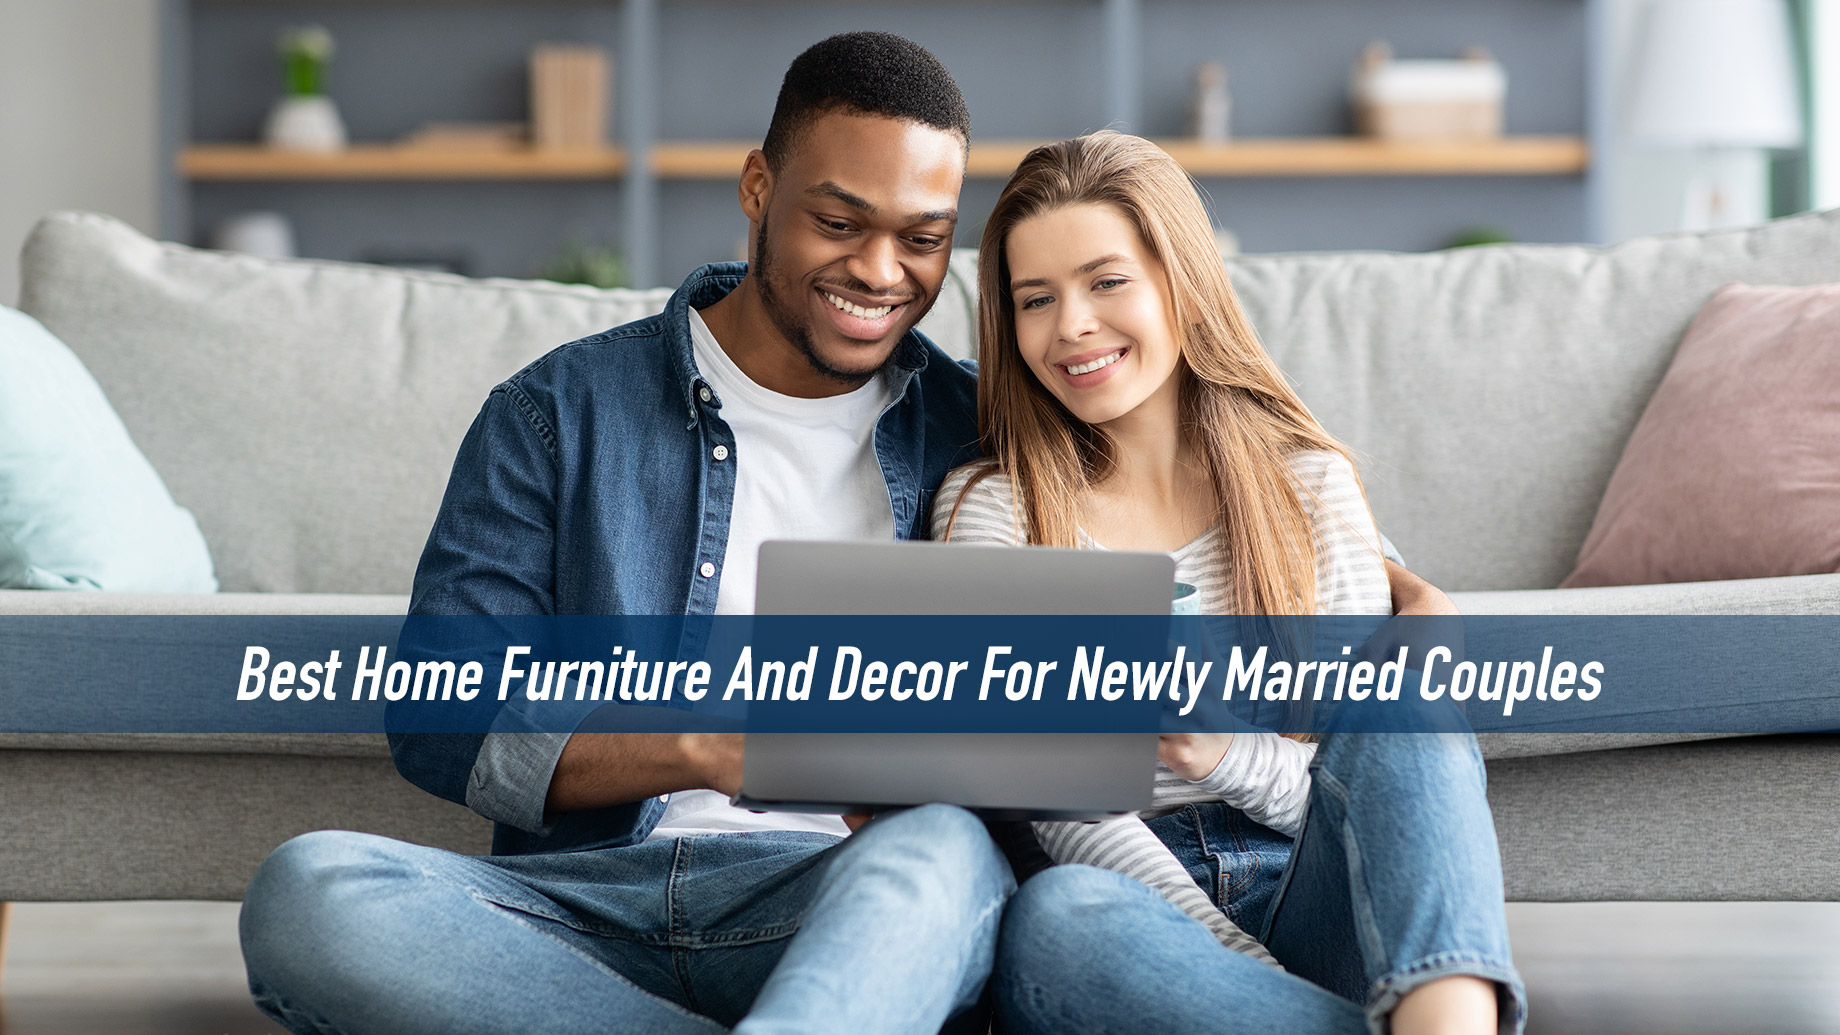 Best Home Furniture And Decor For Newly Married Couples